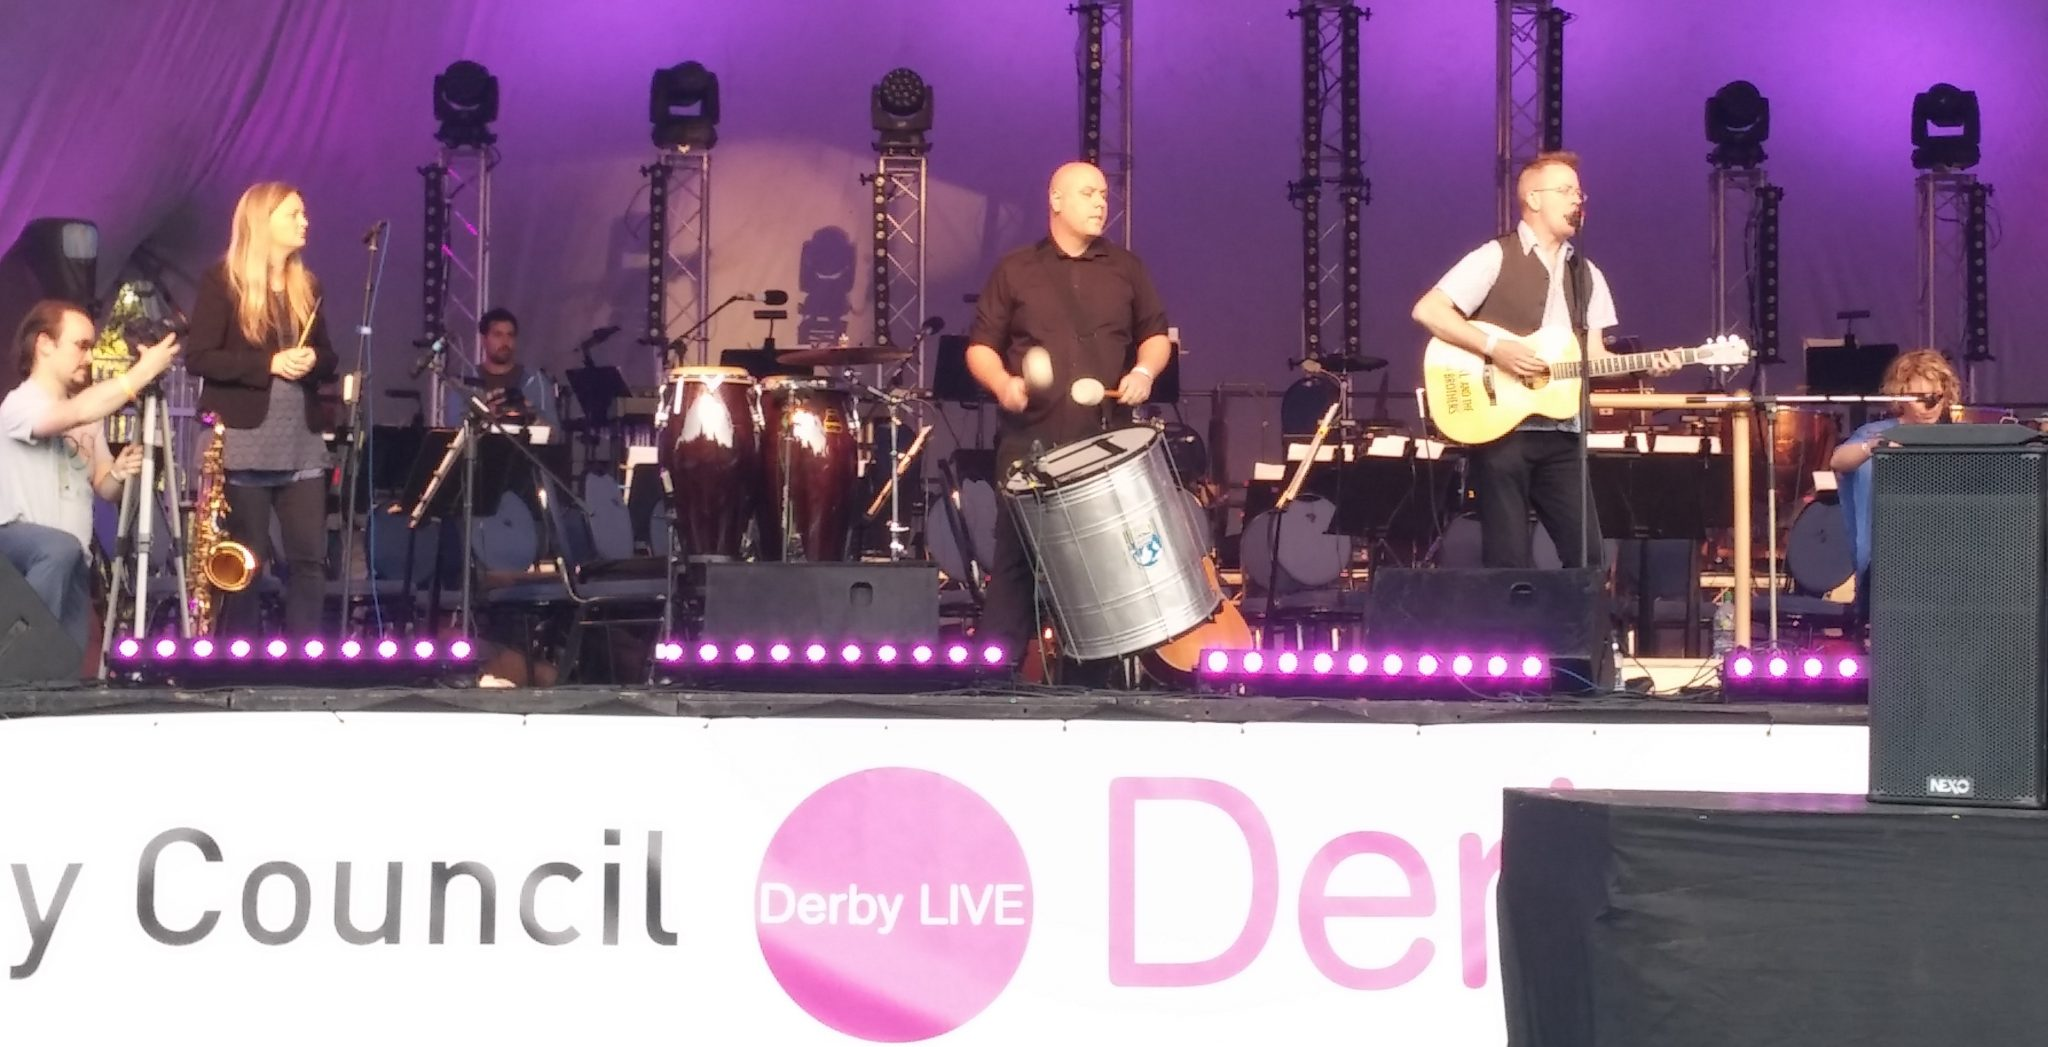 Derby Live packs a punch in weekend of fun & frolics!